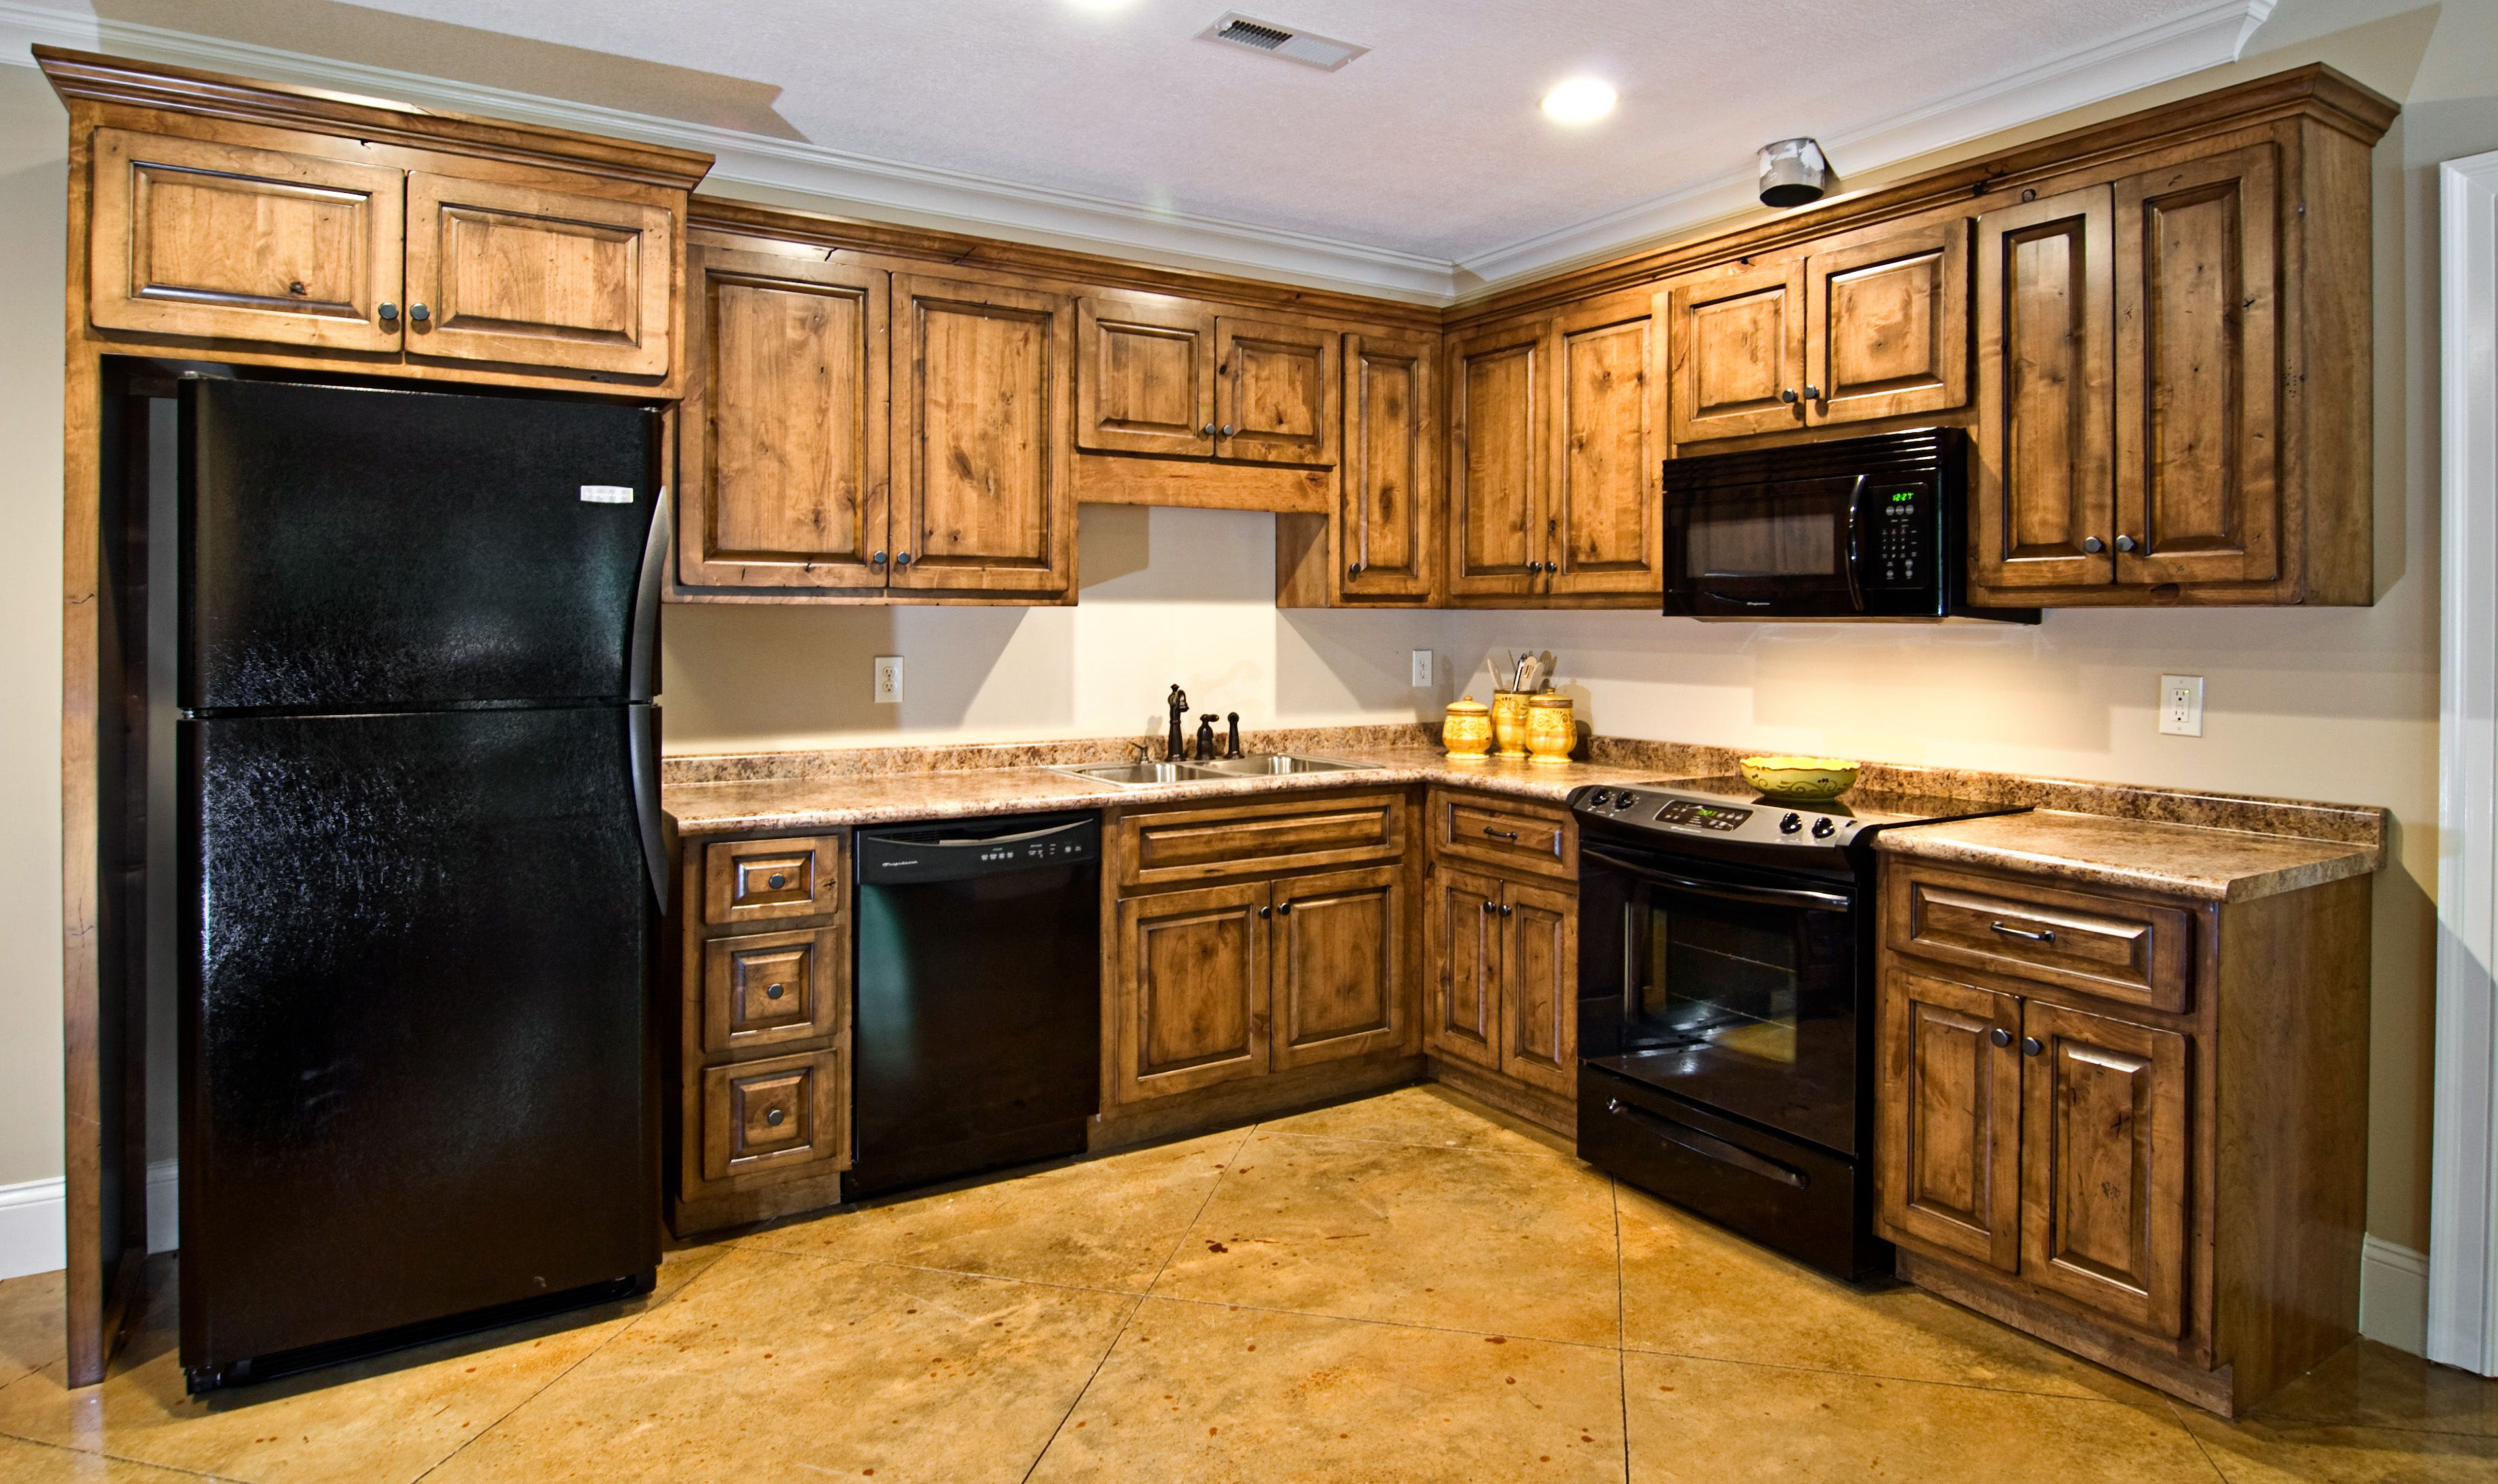 Hickory Kitchen Cabinets Pictures Knotty Alder With Coffee Stain And Black Distressing With Images Hickory Kitchen Black Appliances Kitchen Hickory Kitchen Cabinets